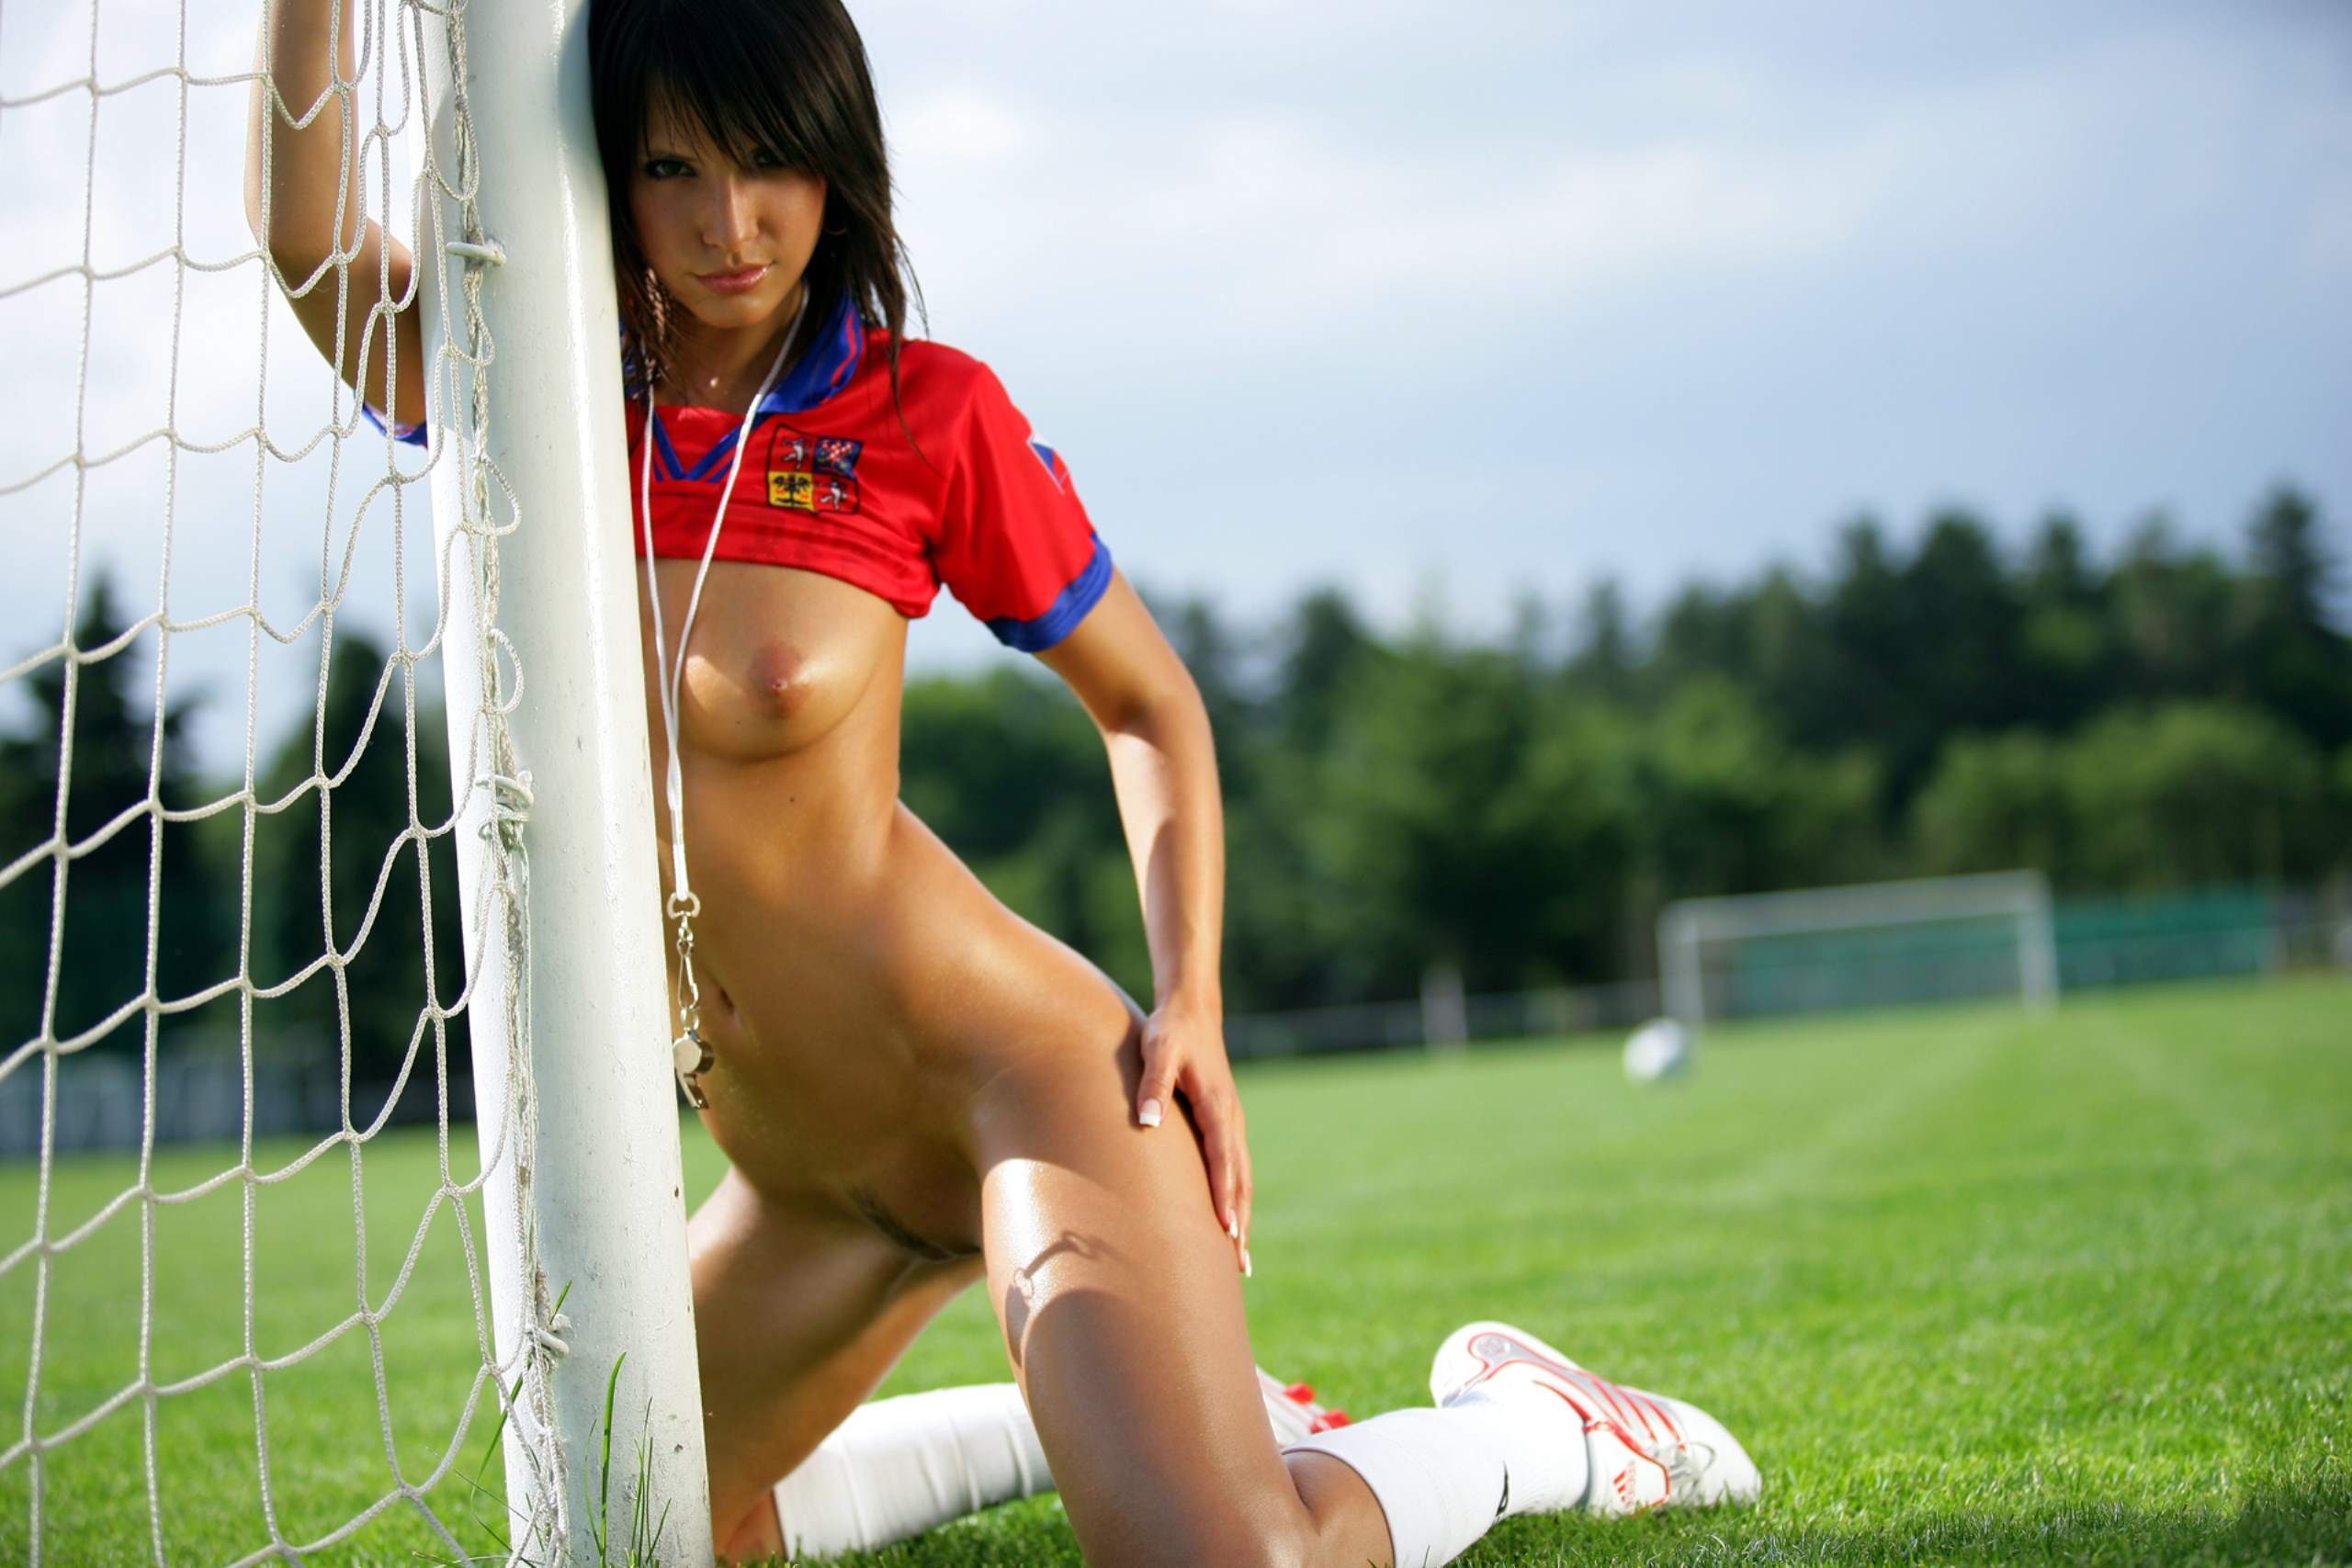 Nude girl football videos